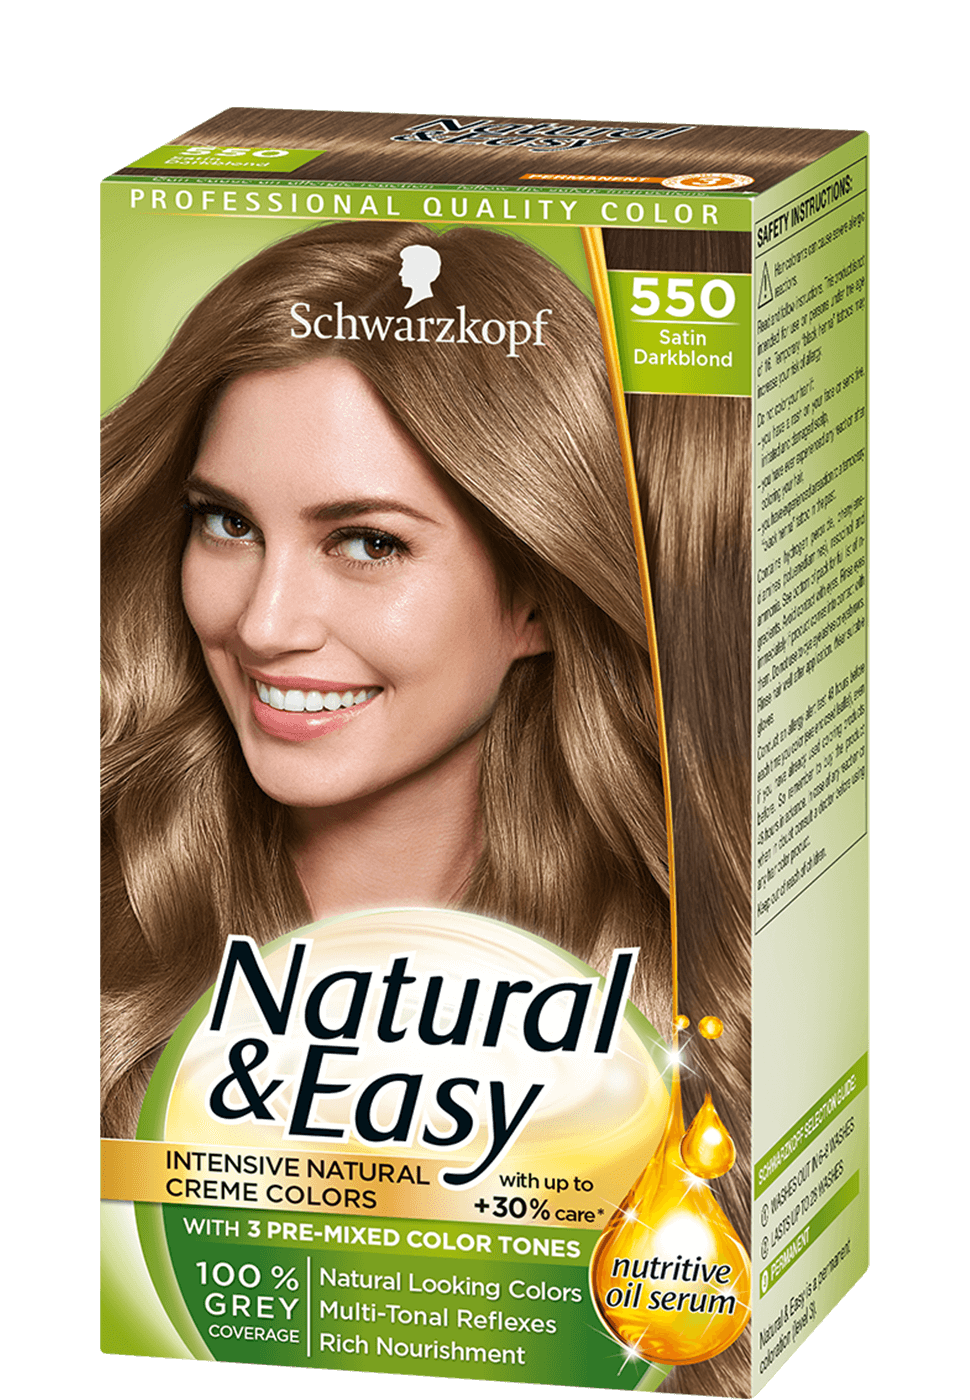 natural_easy_com_blonde_hair_550_satin_darkblond_970x1400